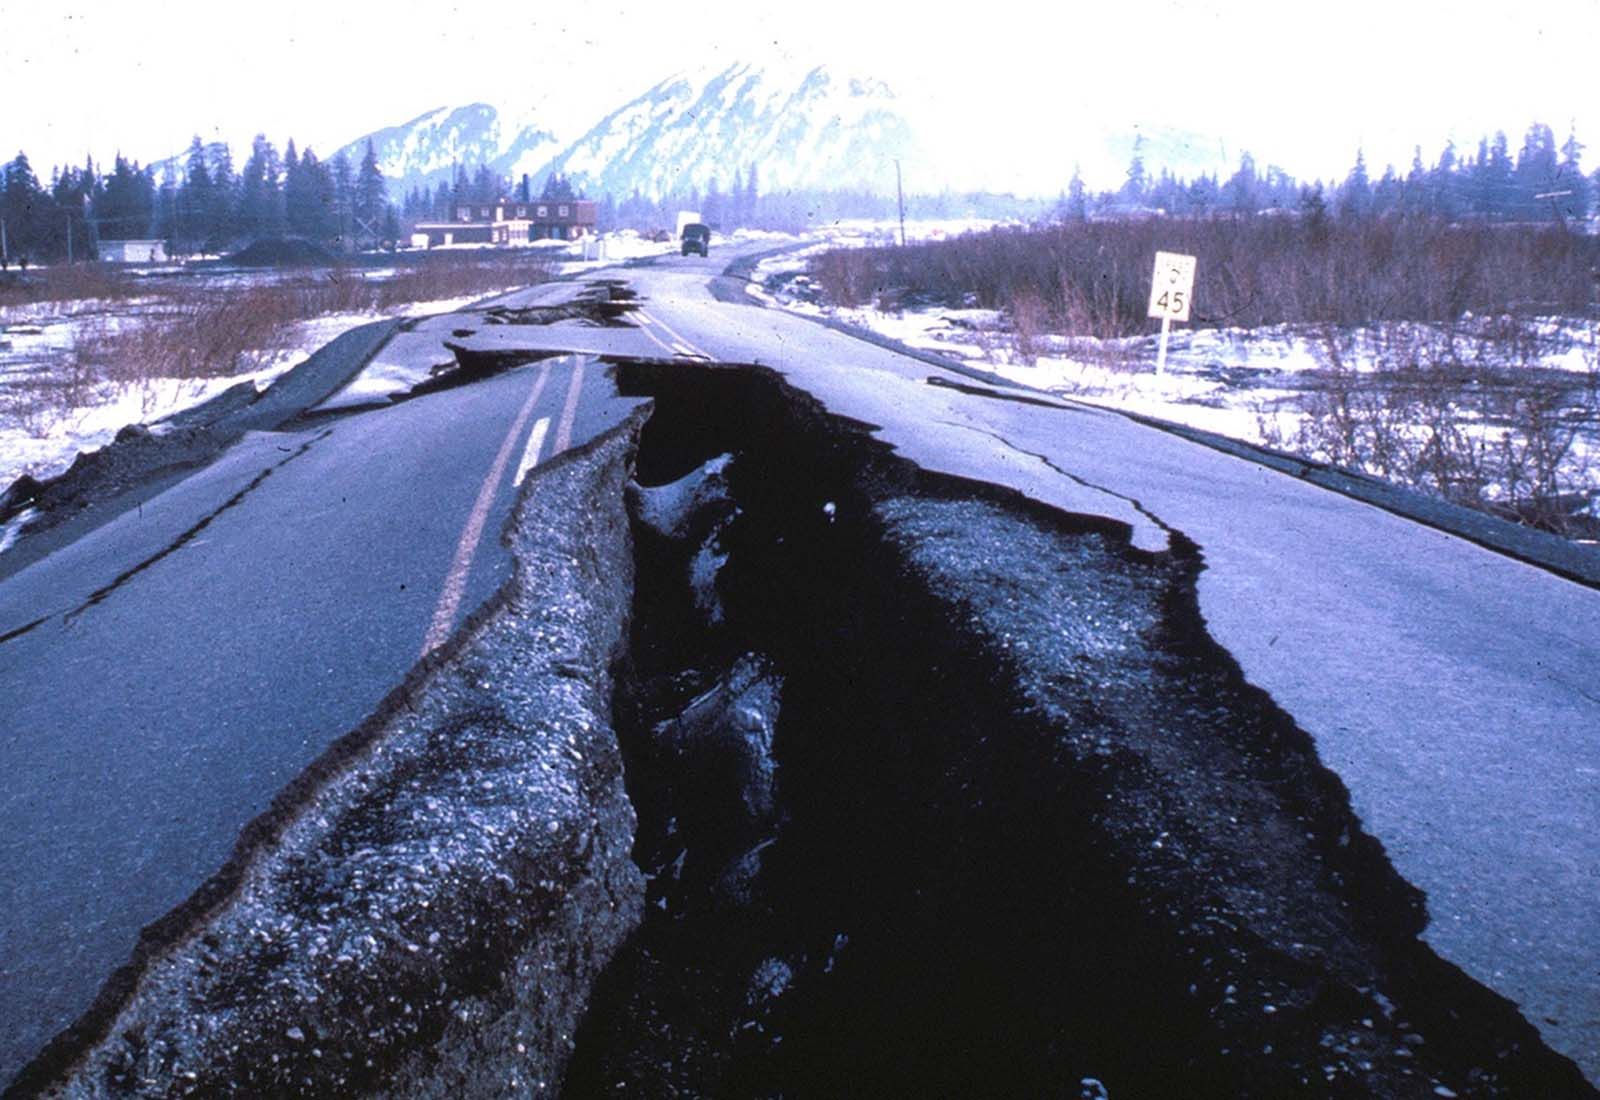 This highway embankment fissured and spread, cracking down the middle. The road was built on thick deposits of alluvium and tidal estuary mud along Turnagain Arm near Portage.